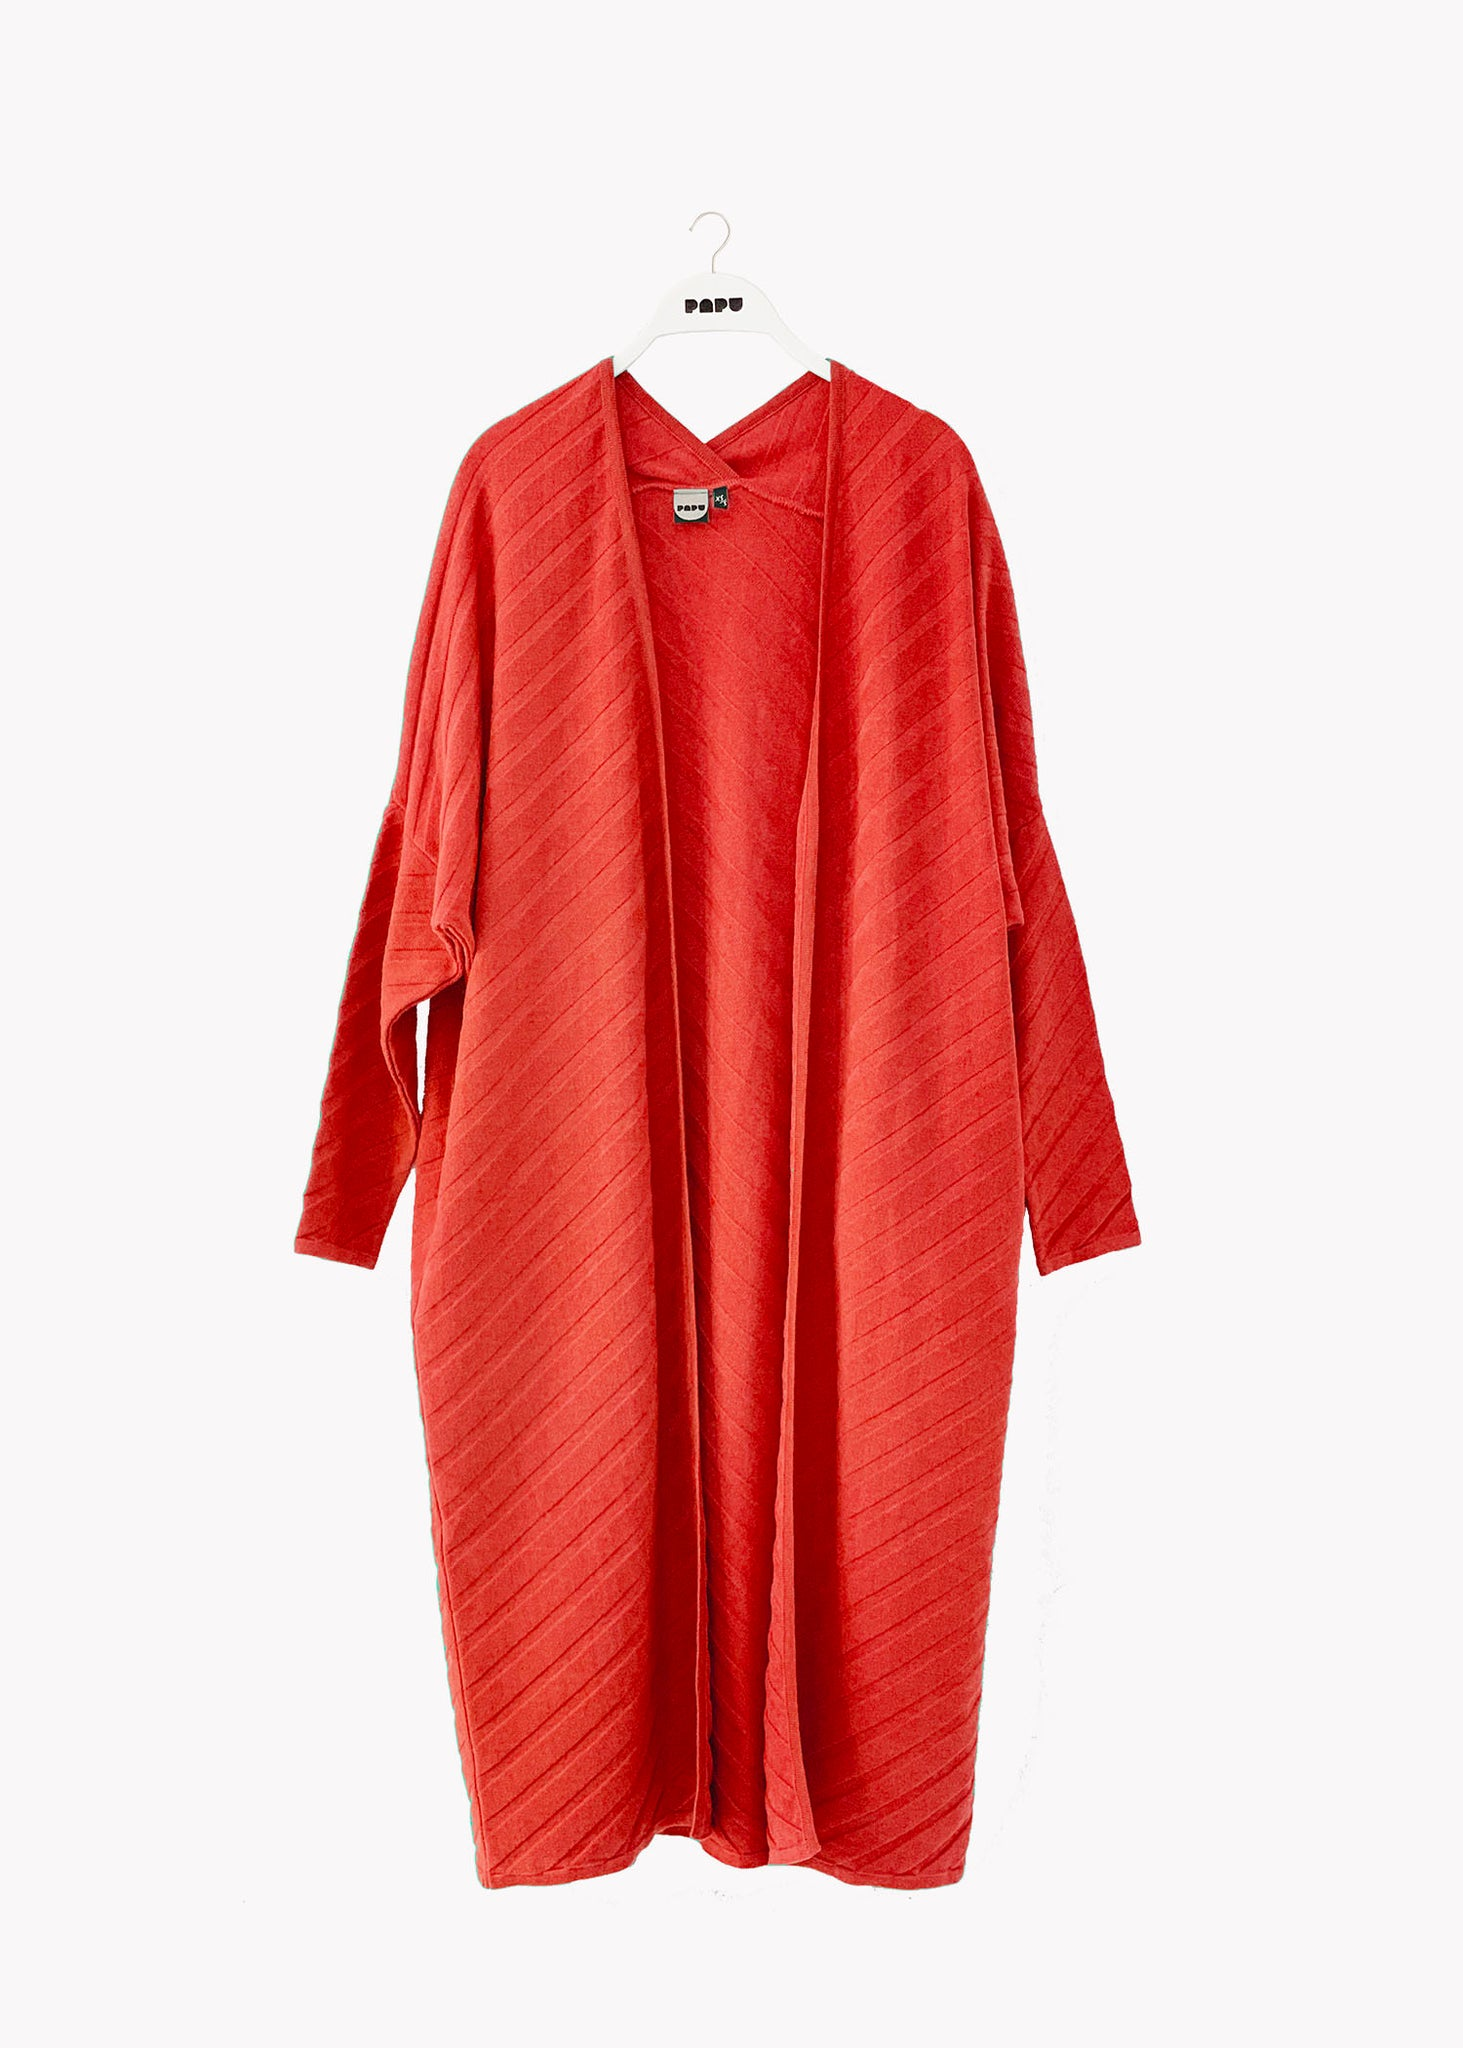 LONG CARDIGAN, Structure Knit, Noisy Red, Women